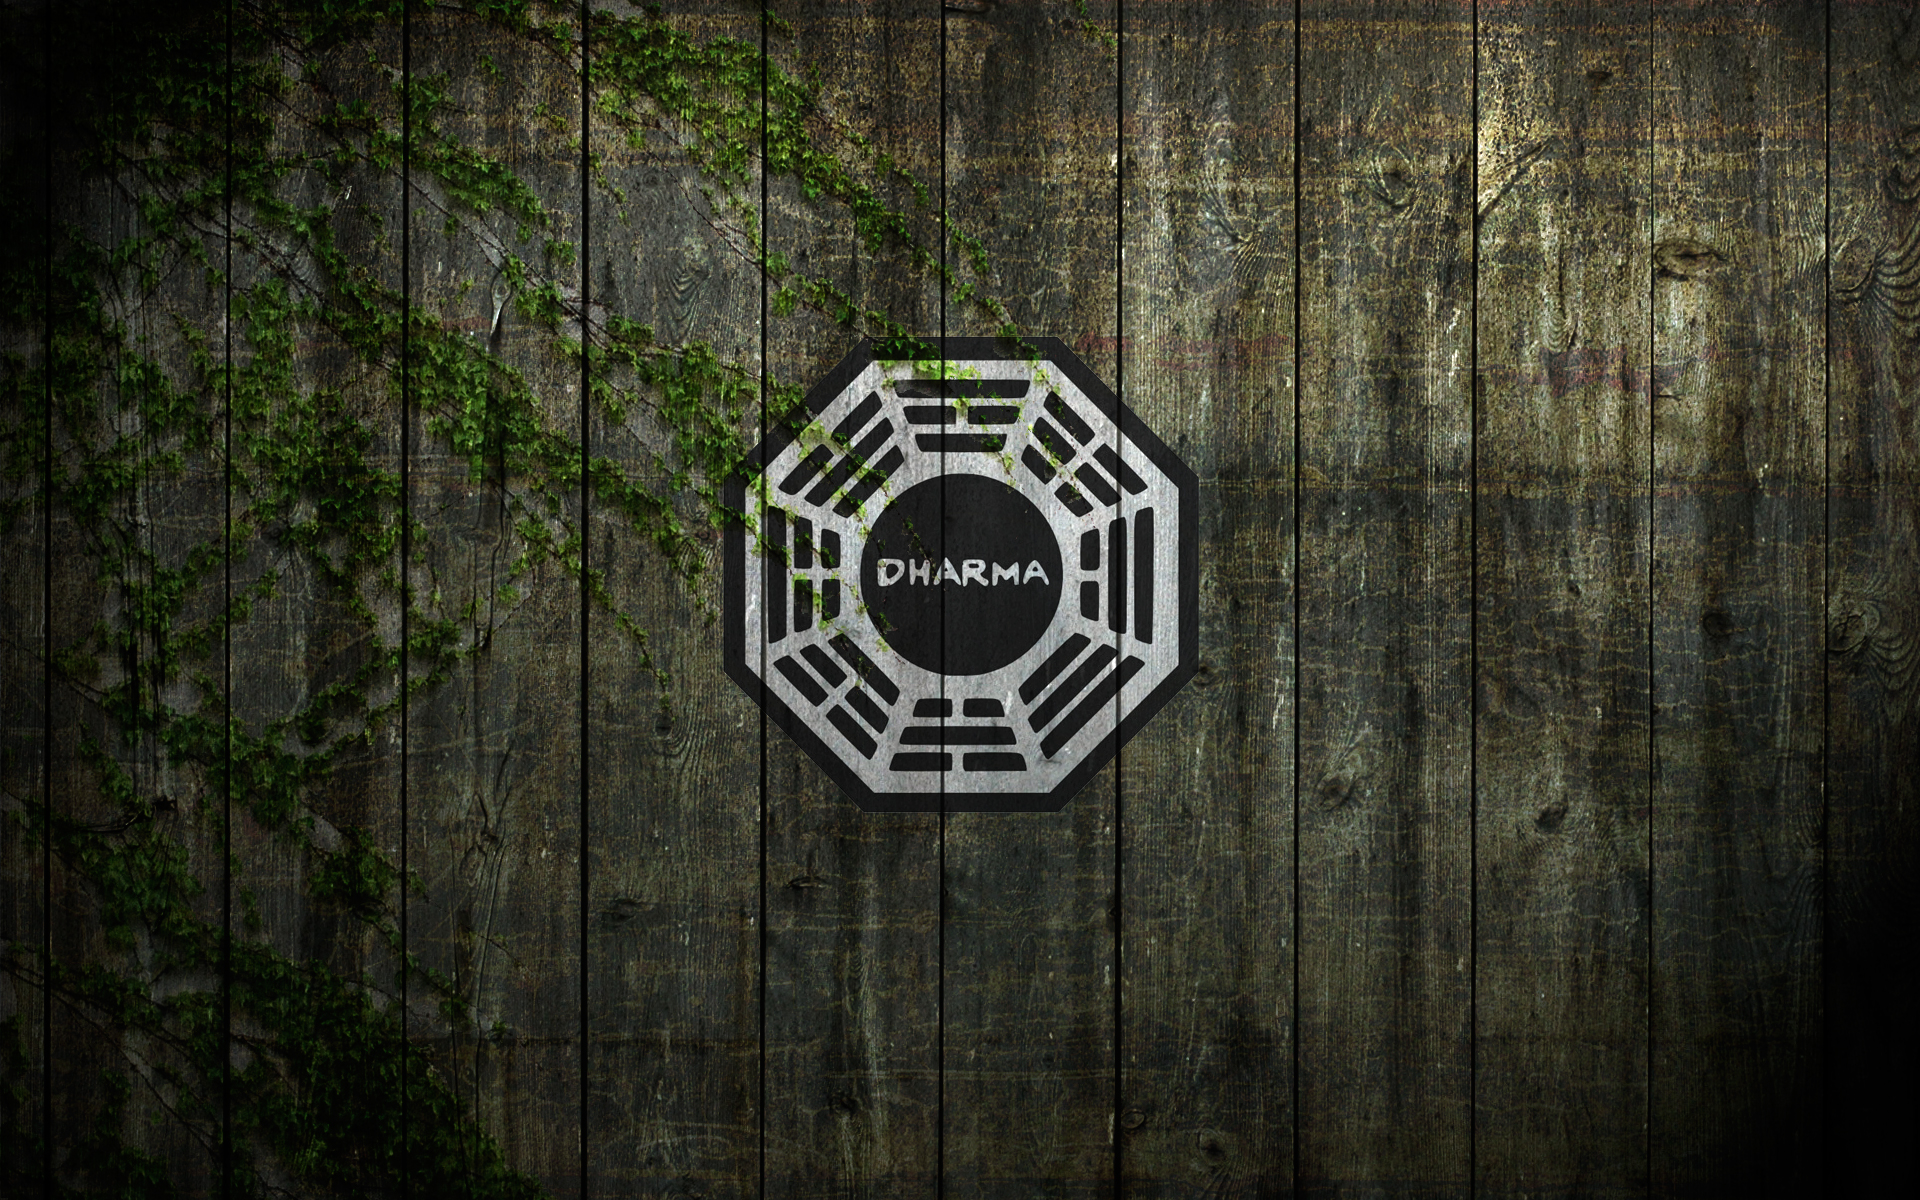 Dharma Initiative logo from Lost